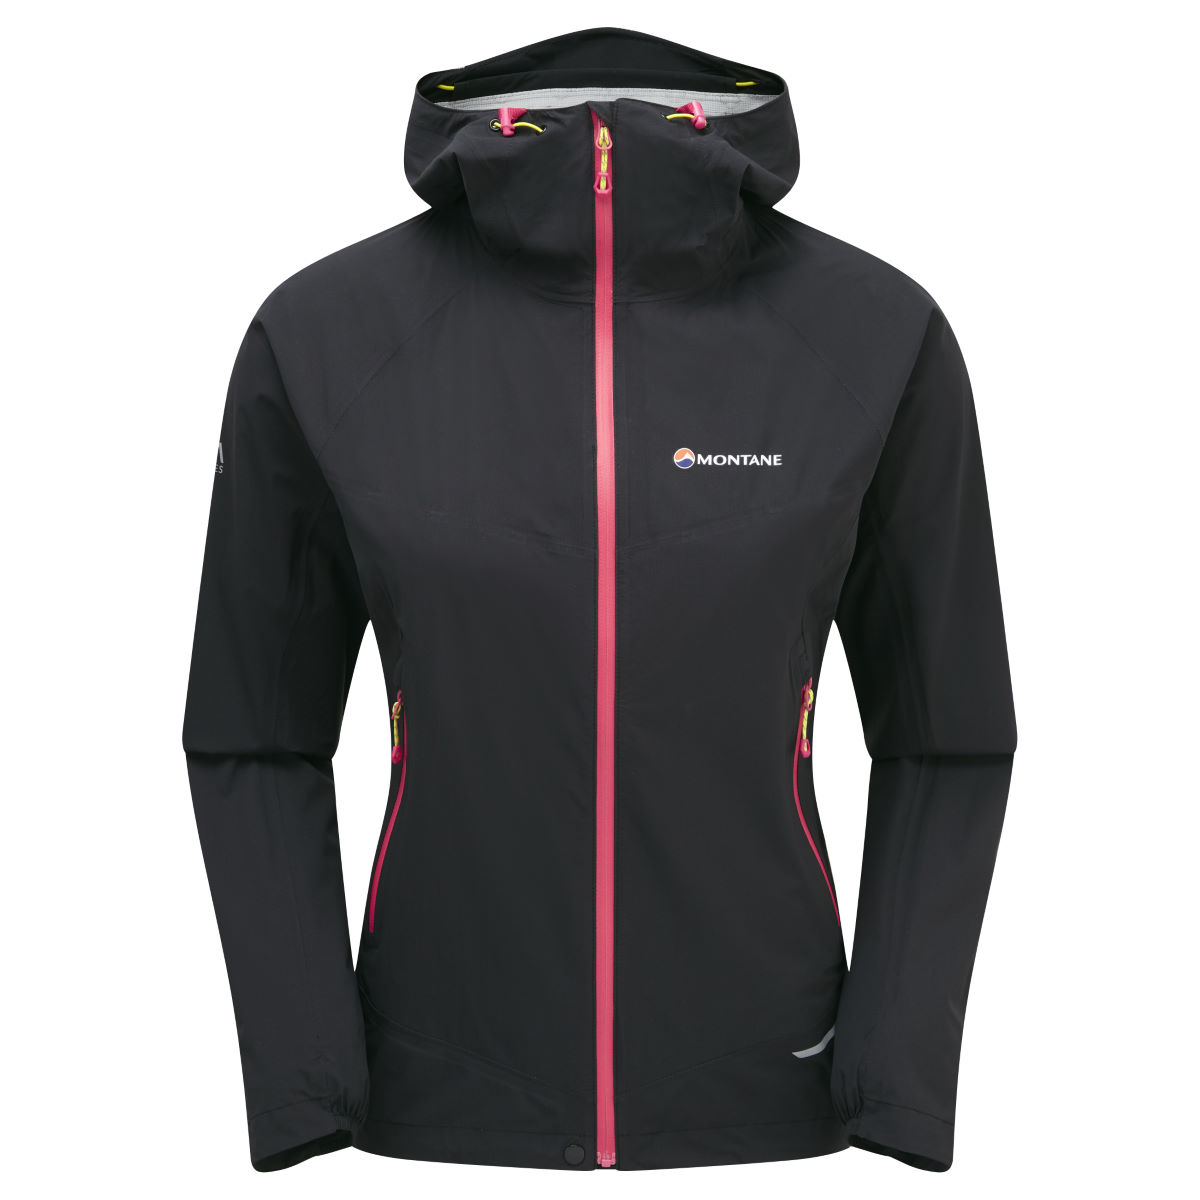 Montane Women's Minimus Stretch Ultra Jacket - Chaquetas de Montane